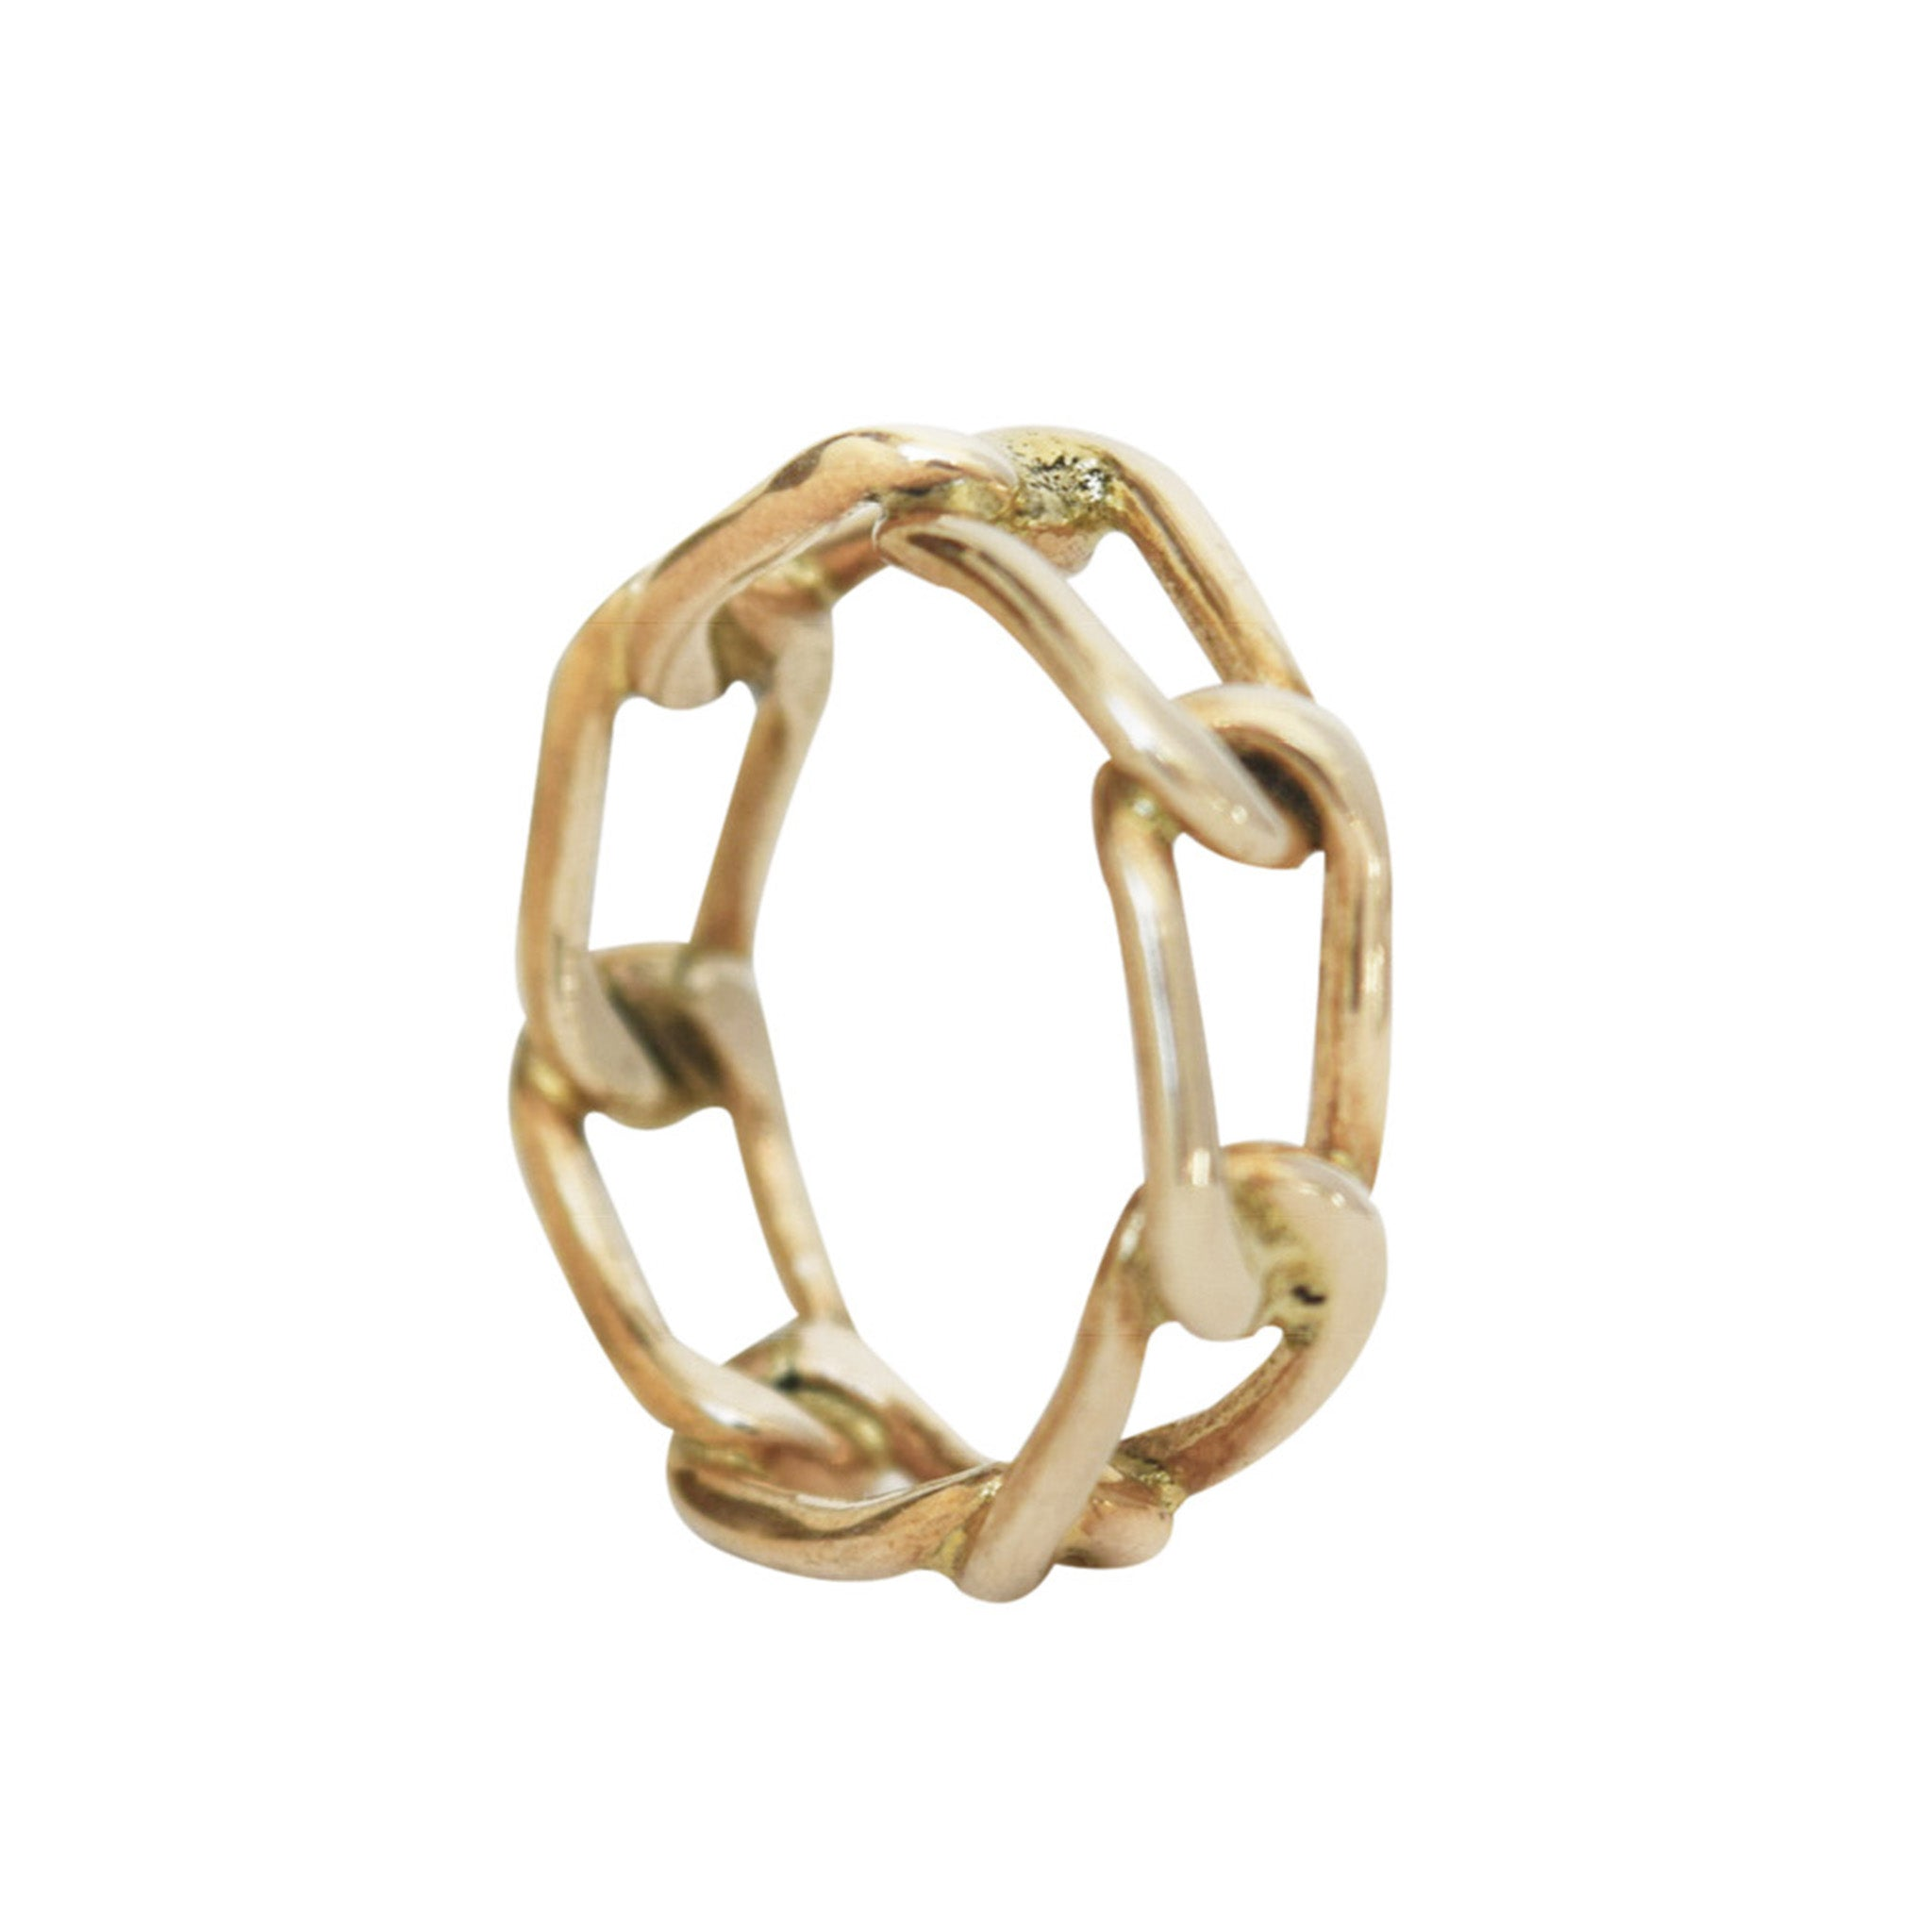 Succession Chainlink Ring - Lissa Bowie